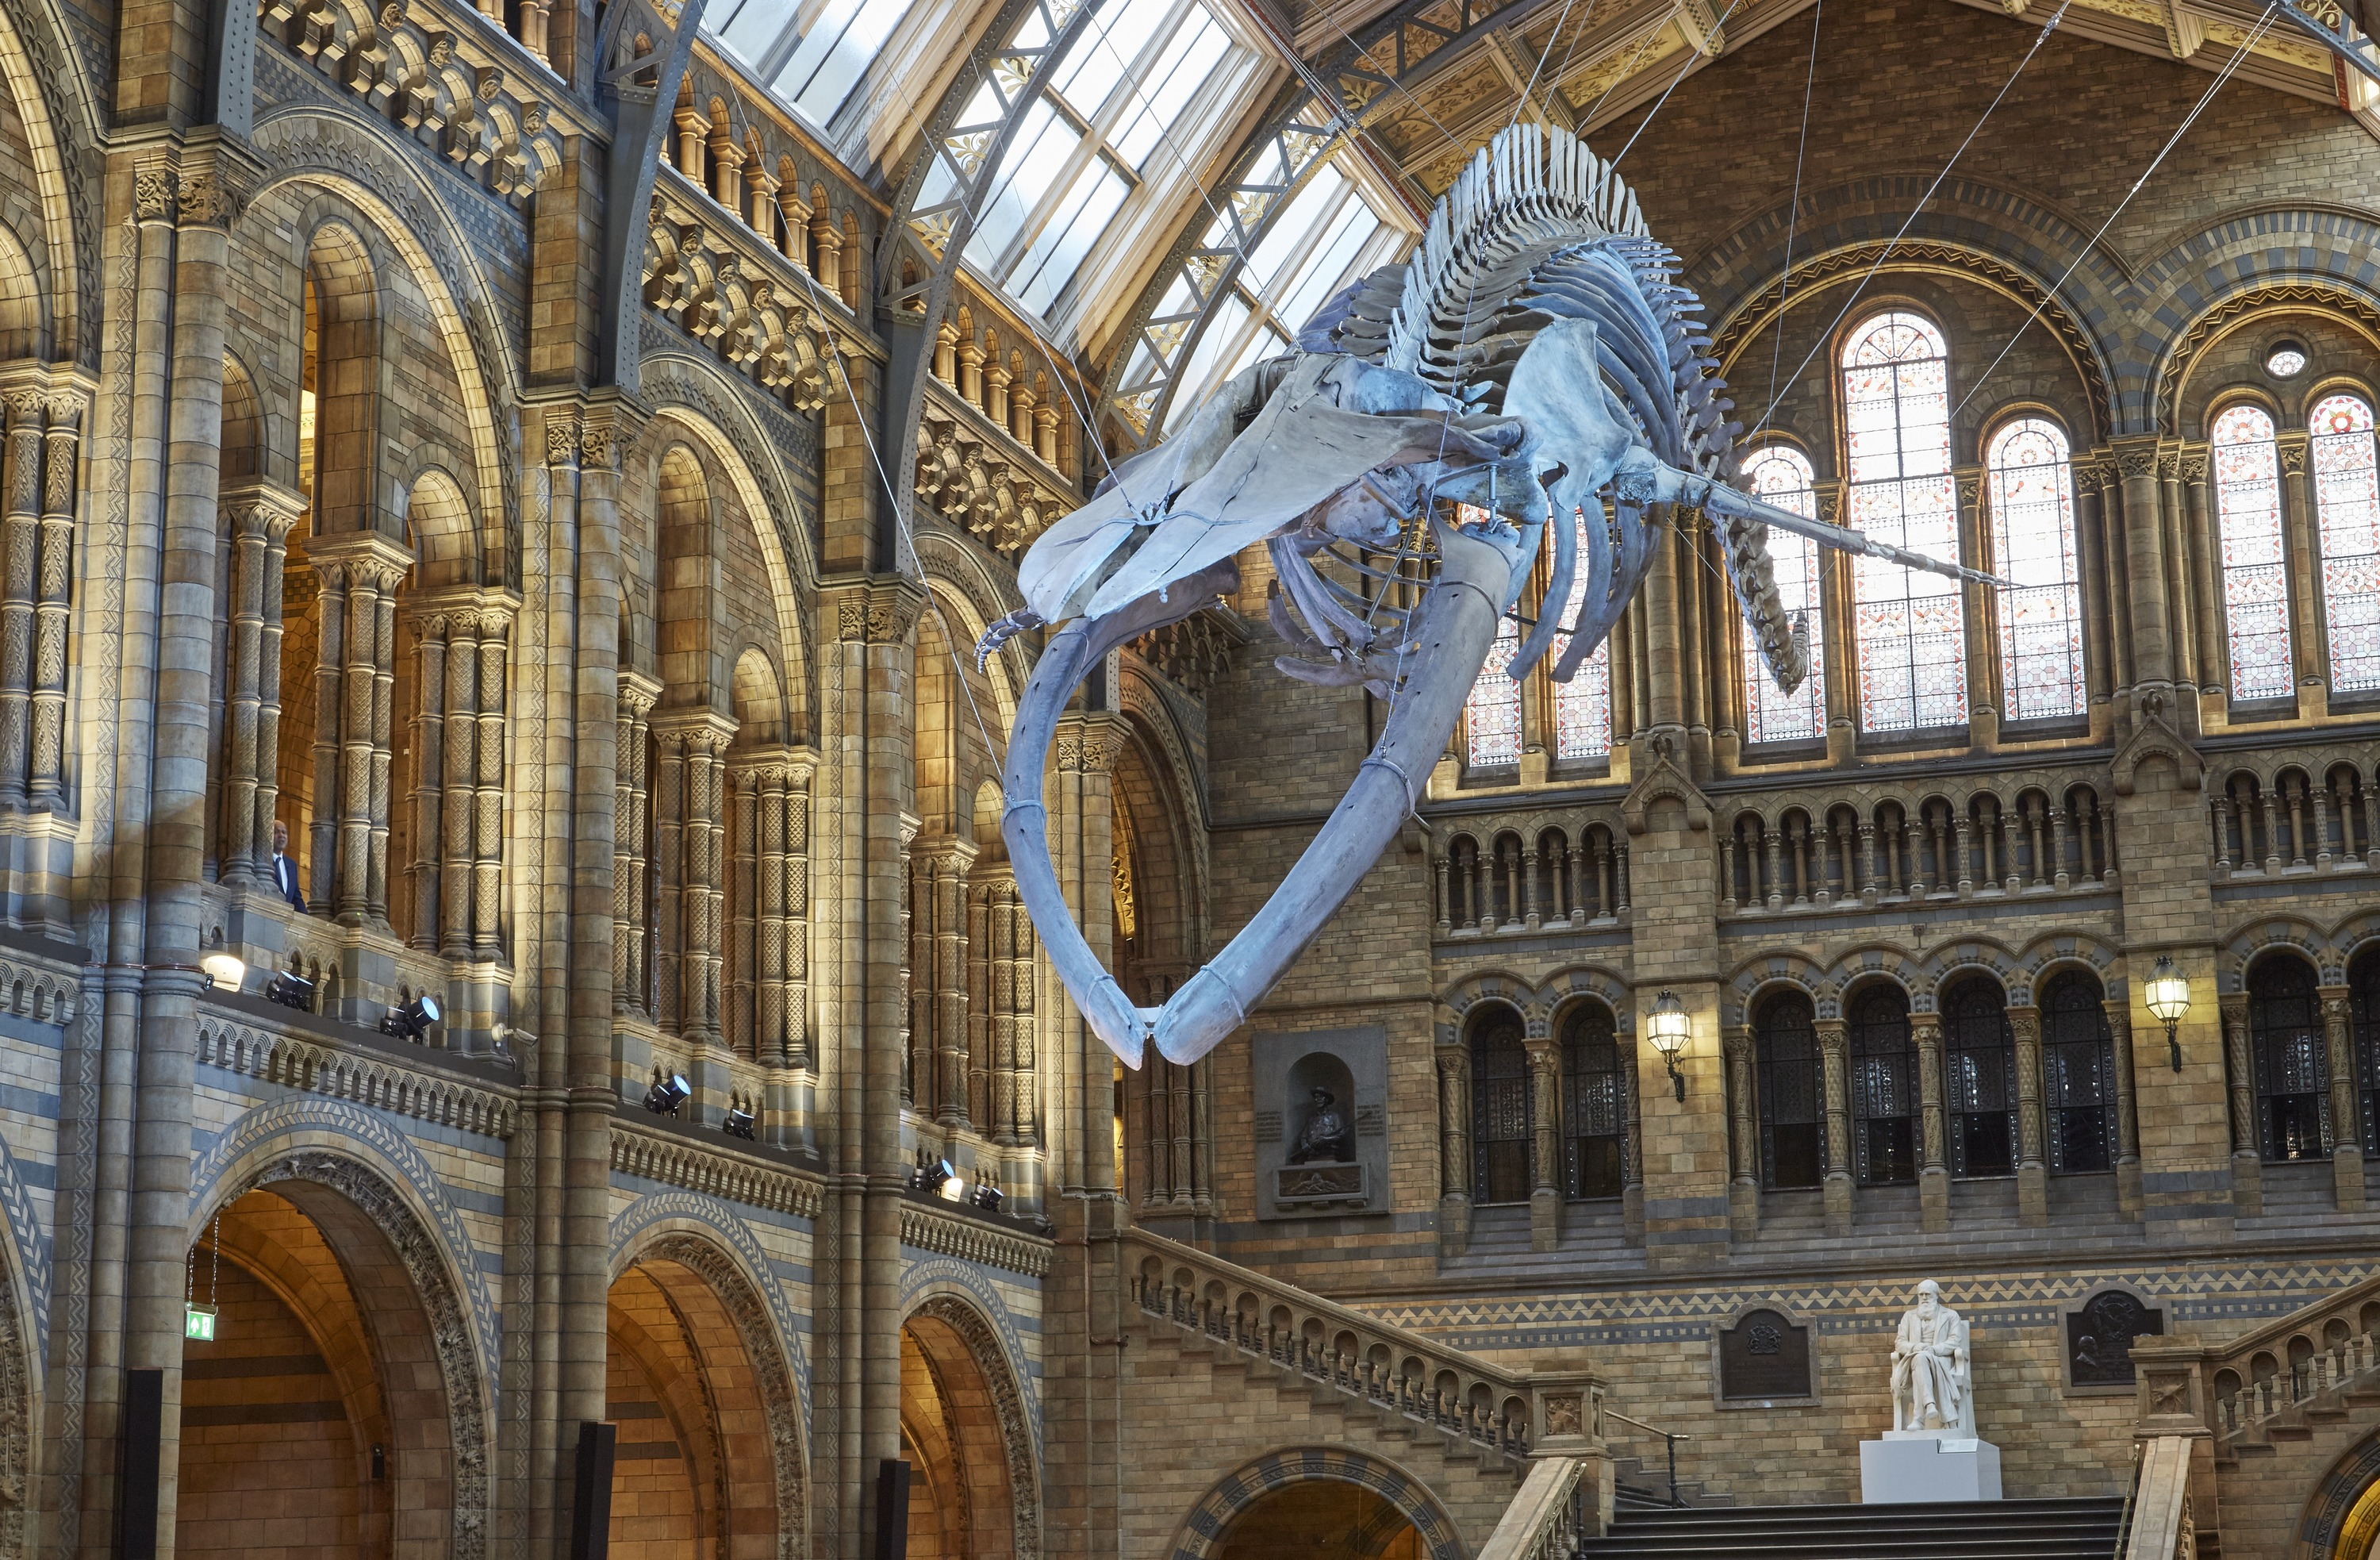 Meet the whale at the Natural History Museum